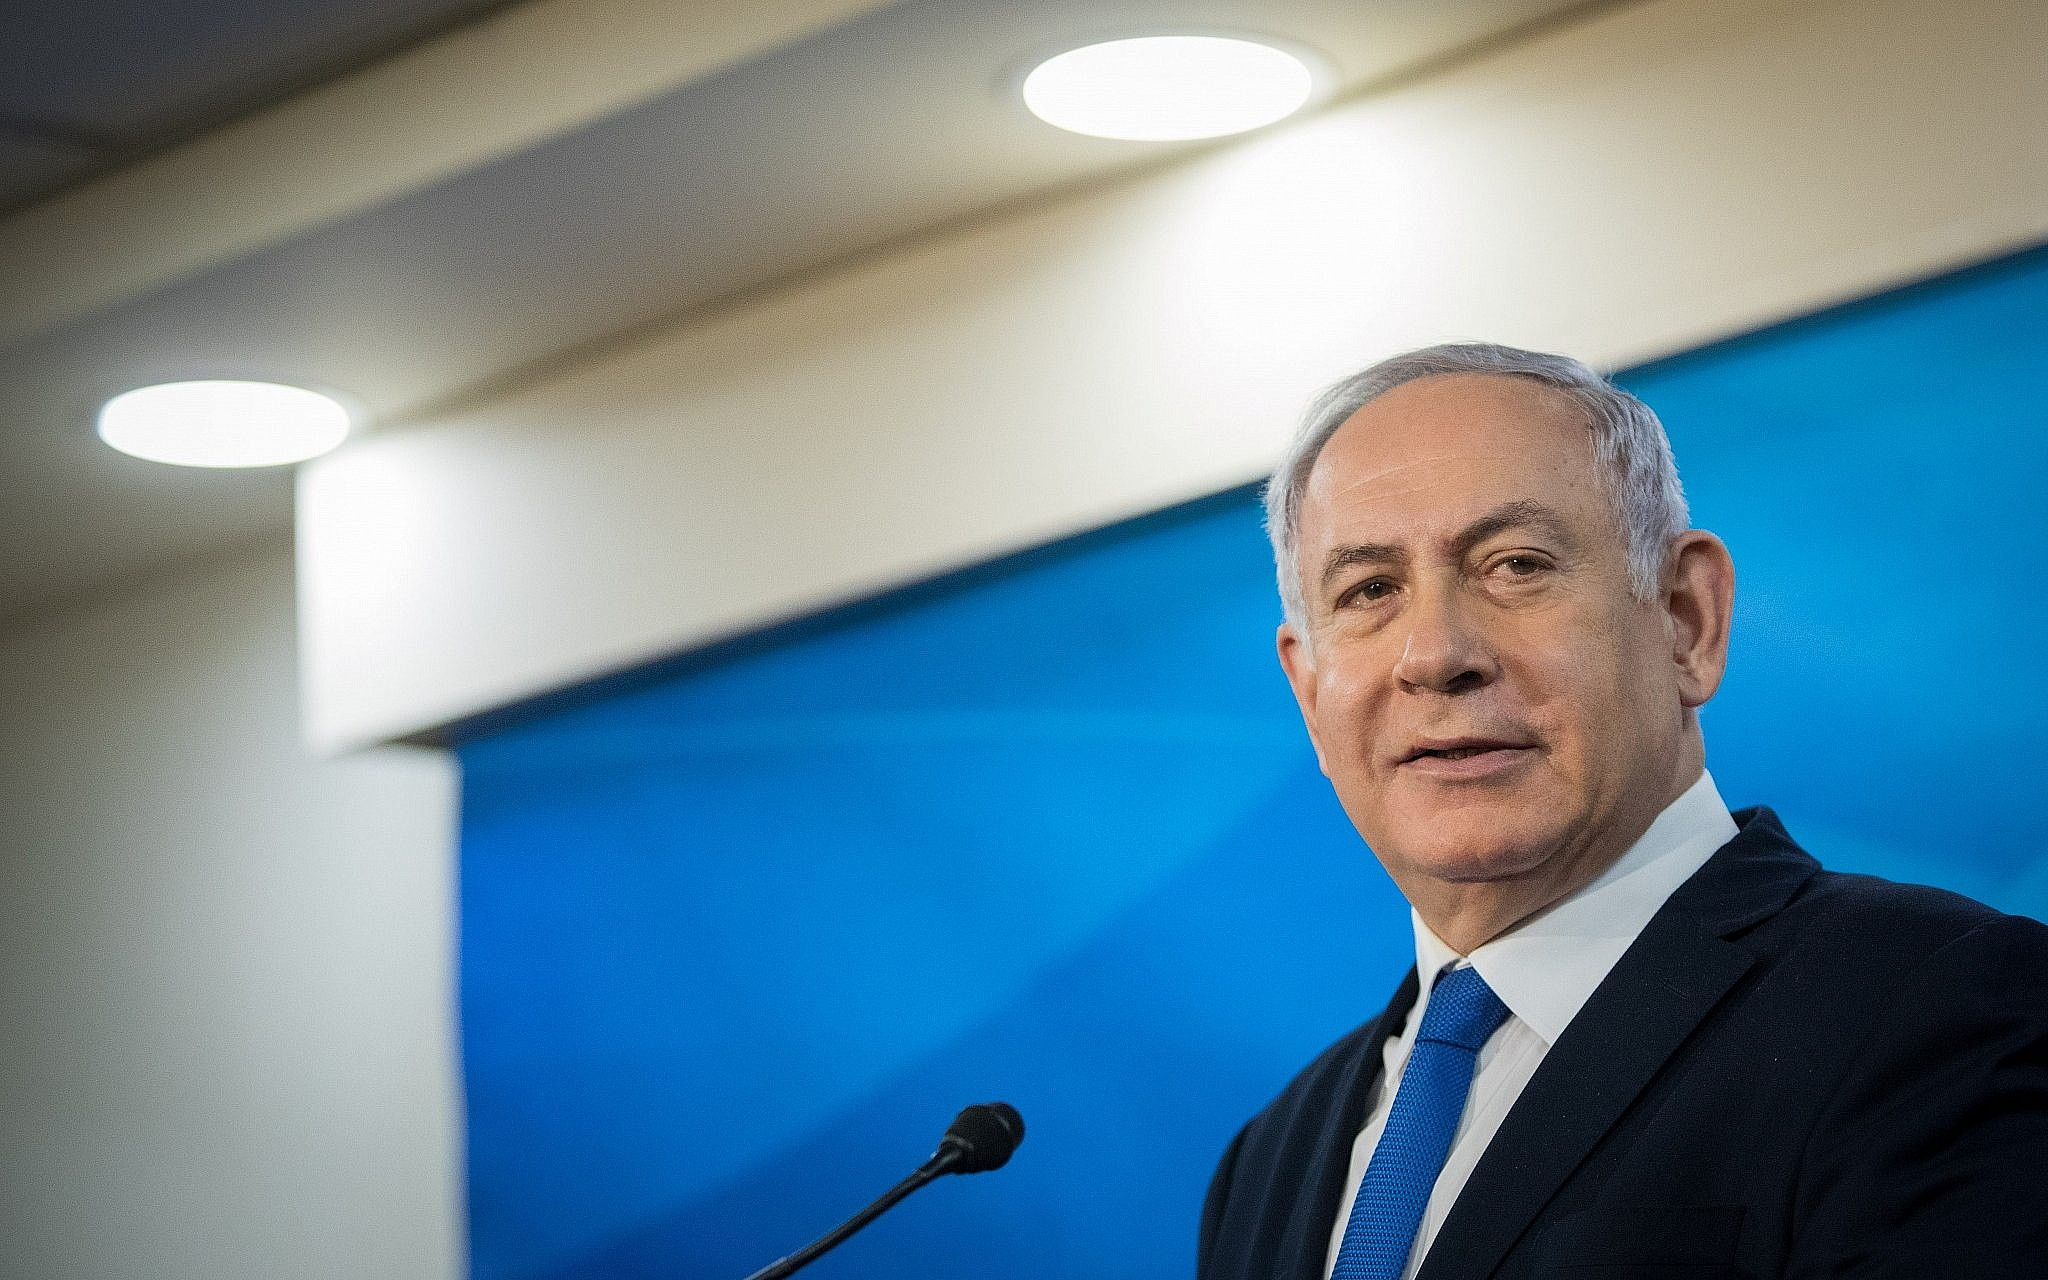 Benjamin Netanyahu strikes deal with hardline parties ahead of Israel elections